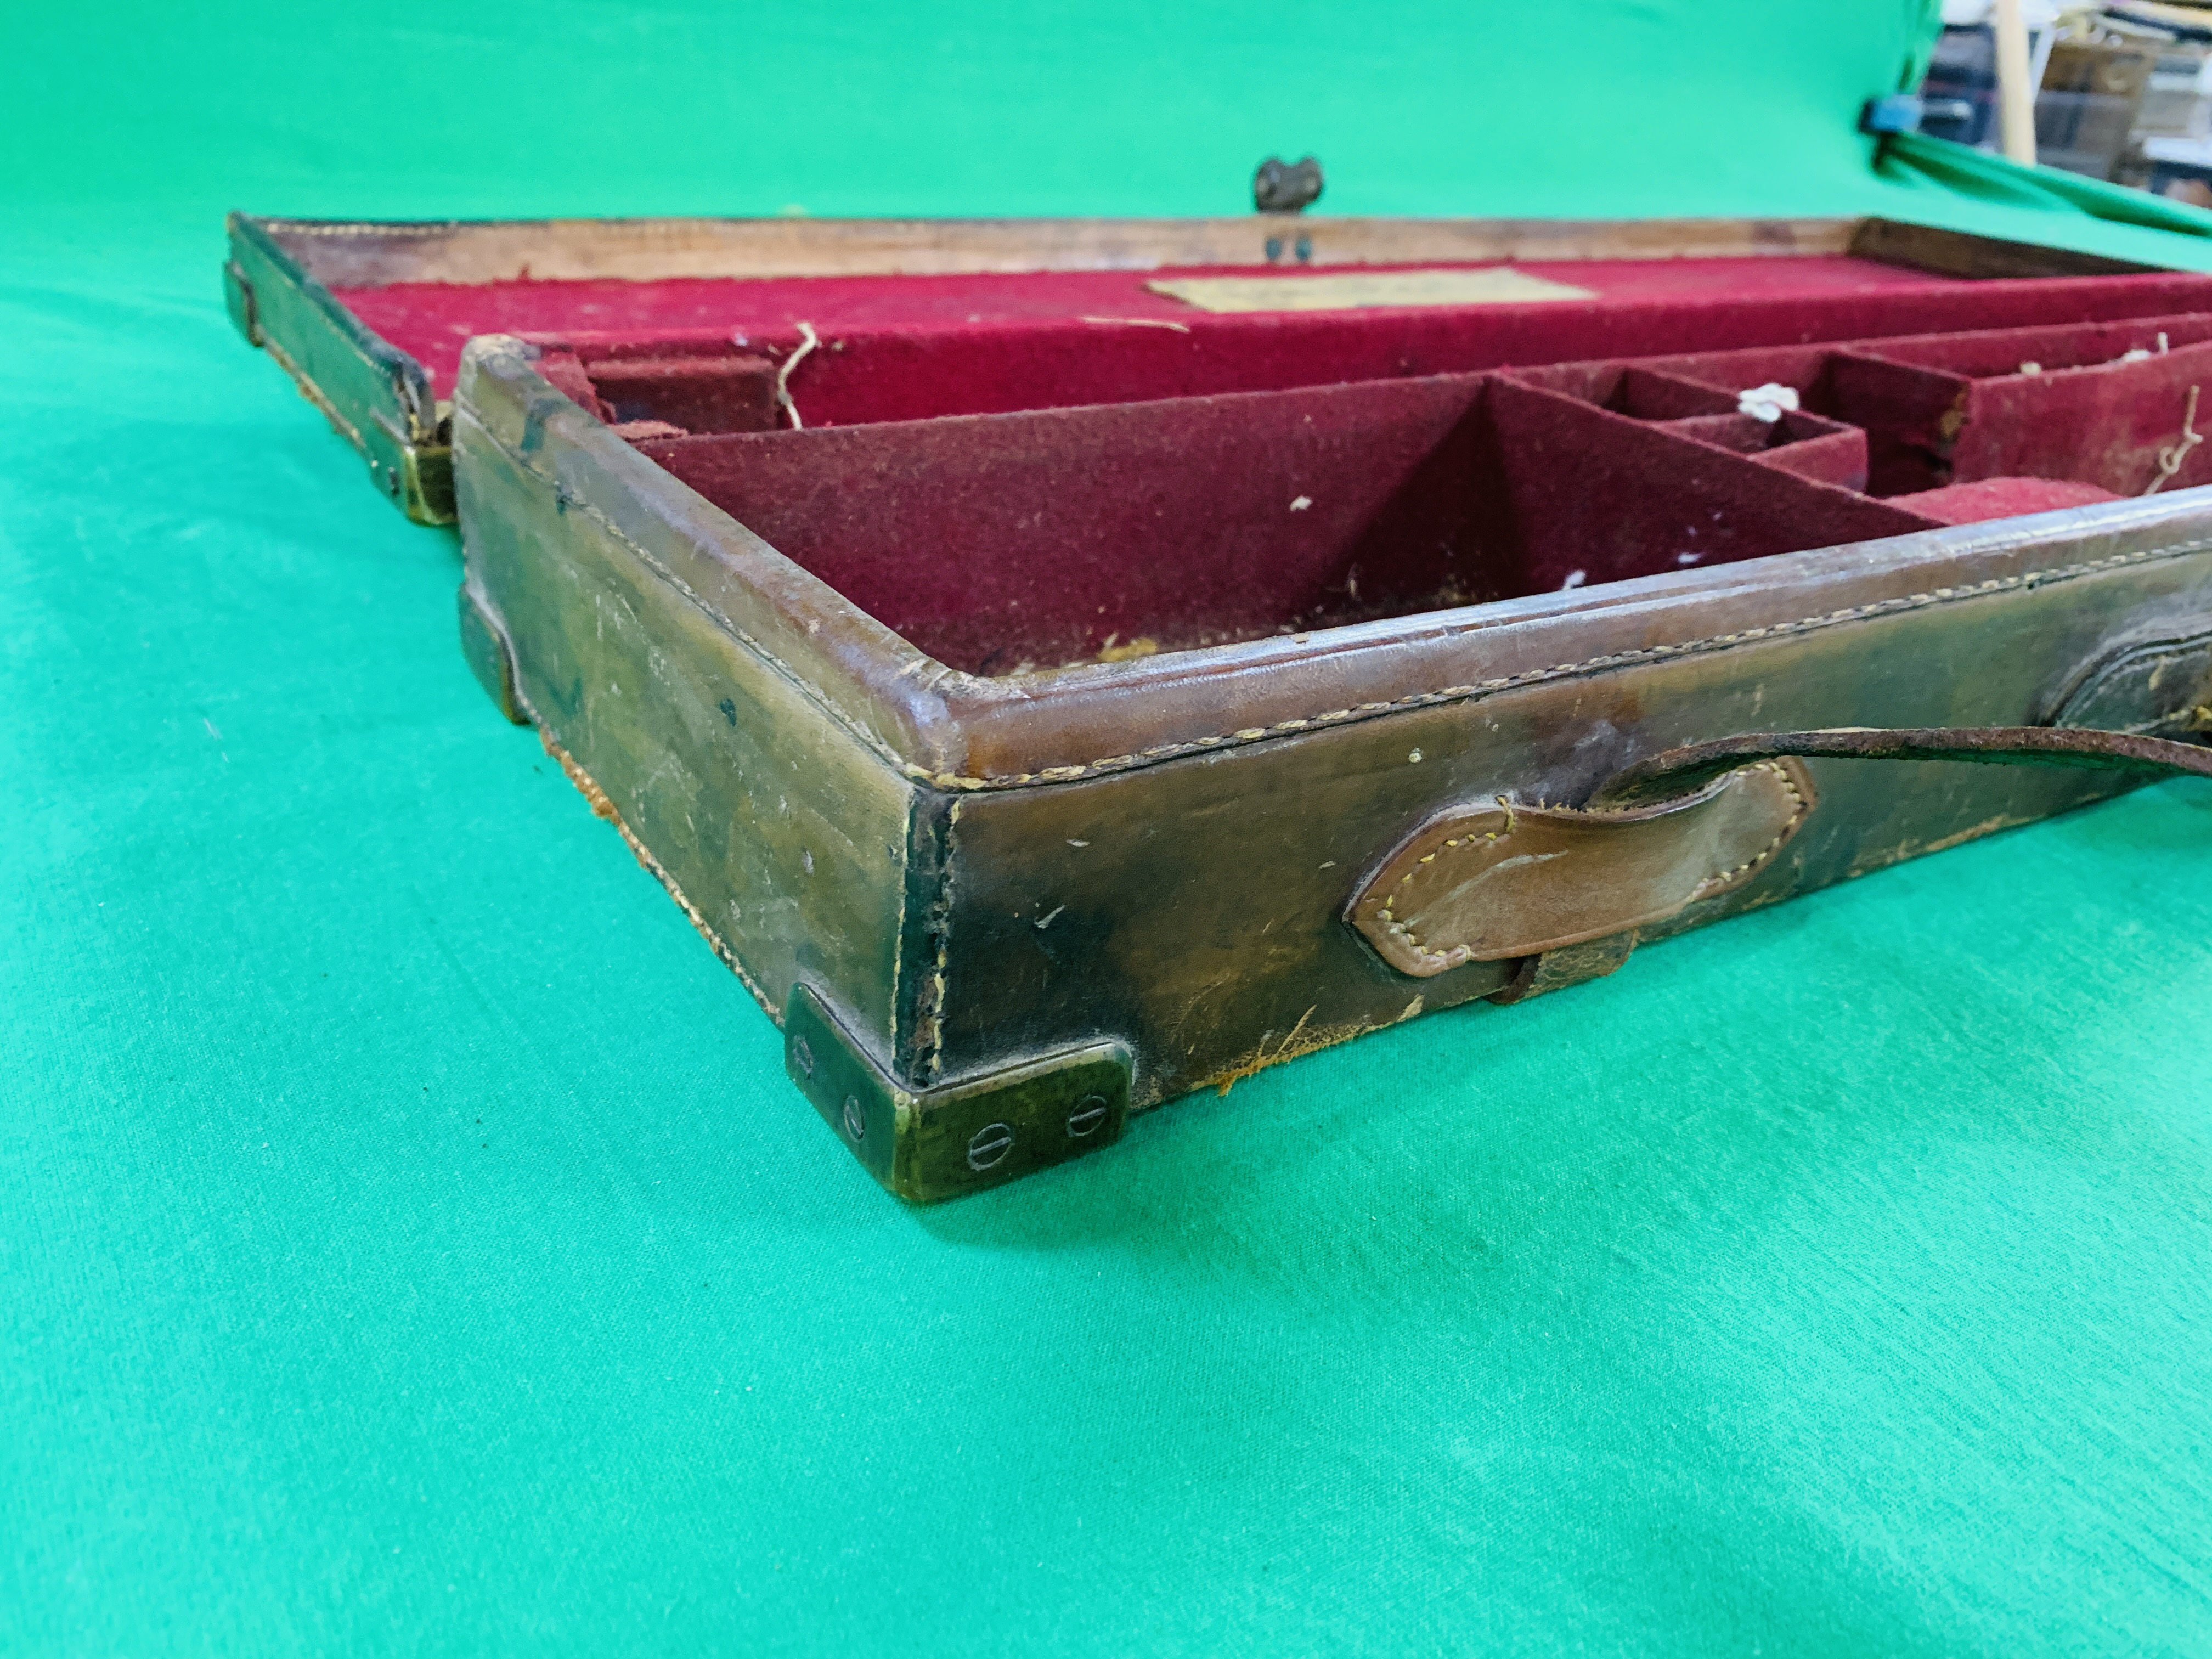 """OAK AND LEATHER 28 / 30"""" SIDE BY SIDE GUN CASE WITH B. HALLIDAY AND CO. LTD OF LONDON CASE LABEL. - Image 6 of 10"""